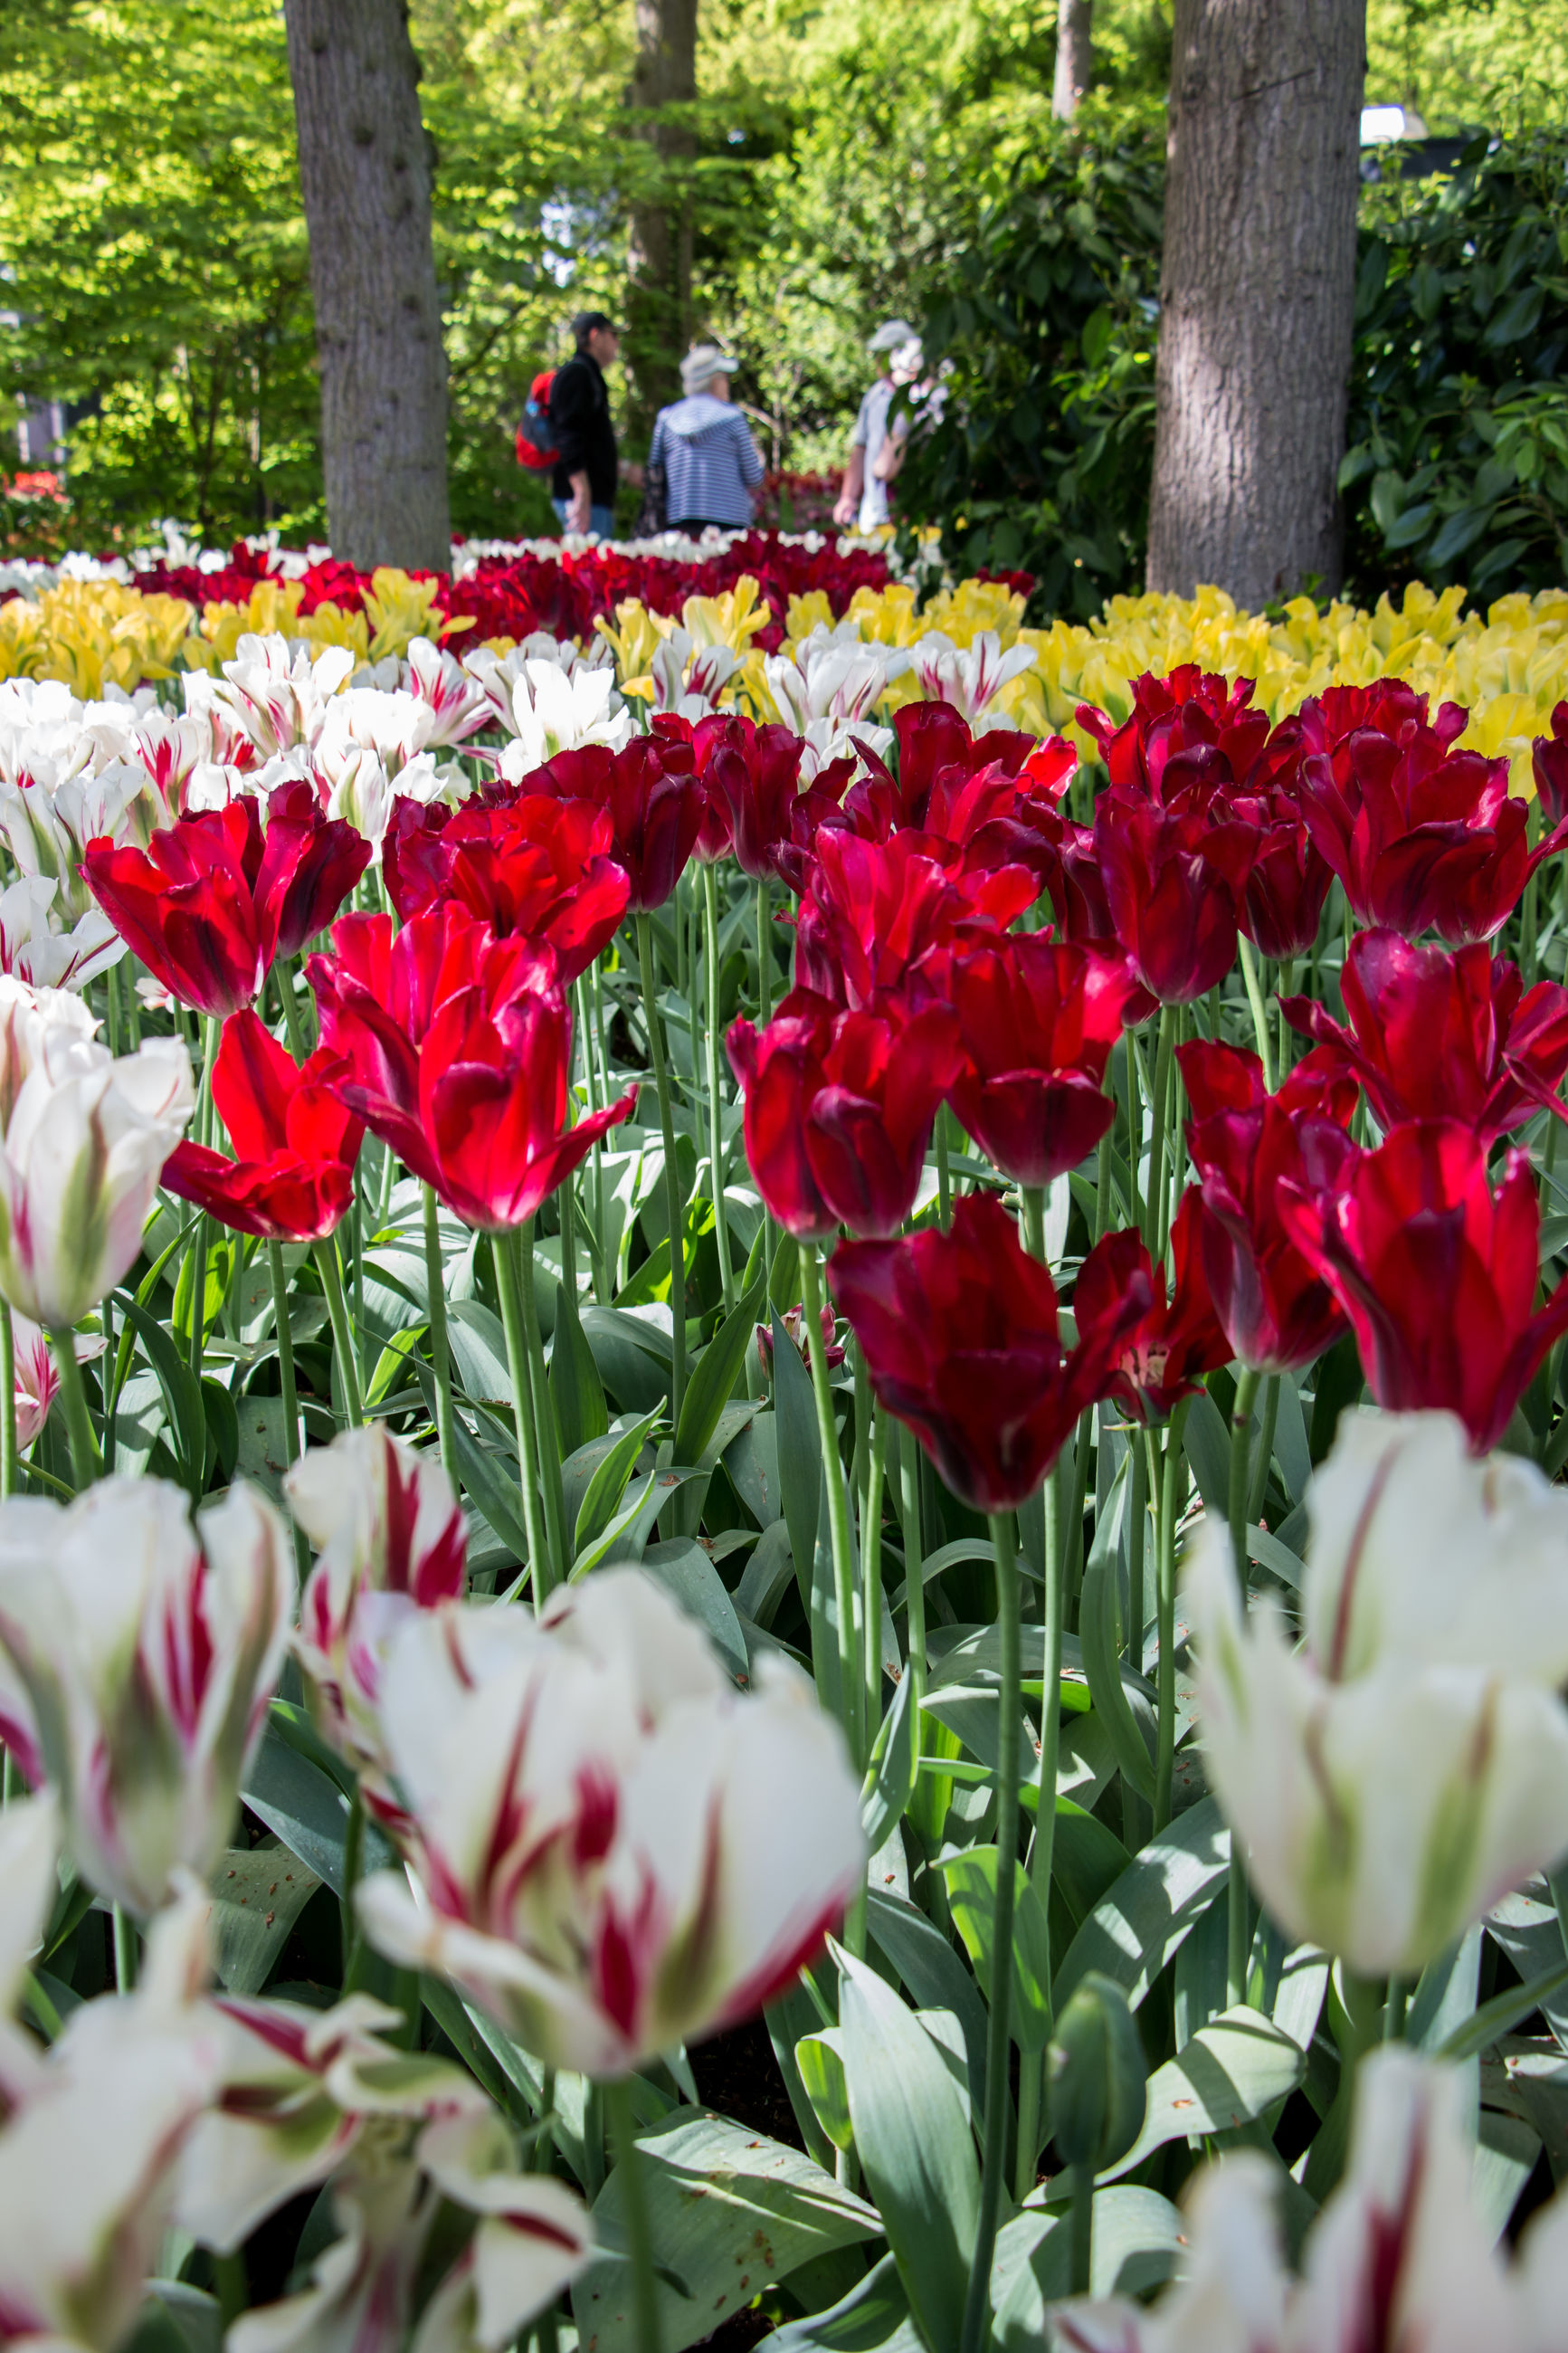 flower, growth, nature, beauty in nature, red, petal, fragility, blooming, outdoors, day, green color, plant, freshness, flower head, park - man made space, tulip, leaf, no people, tree, close-up